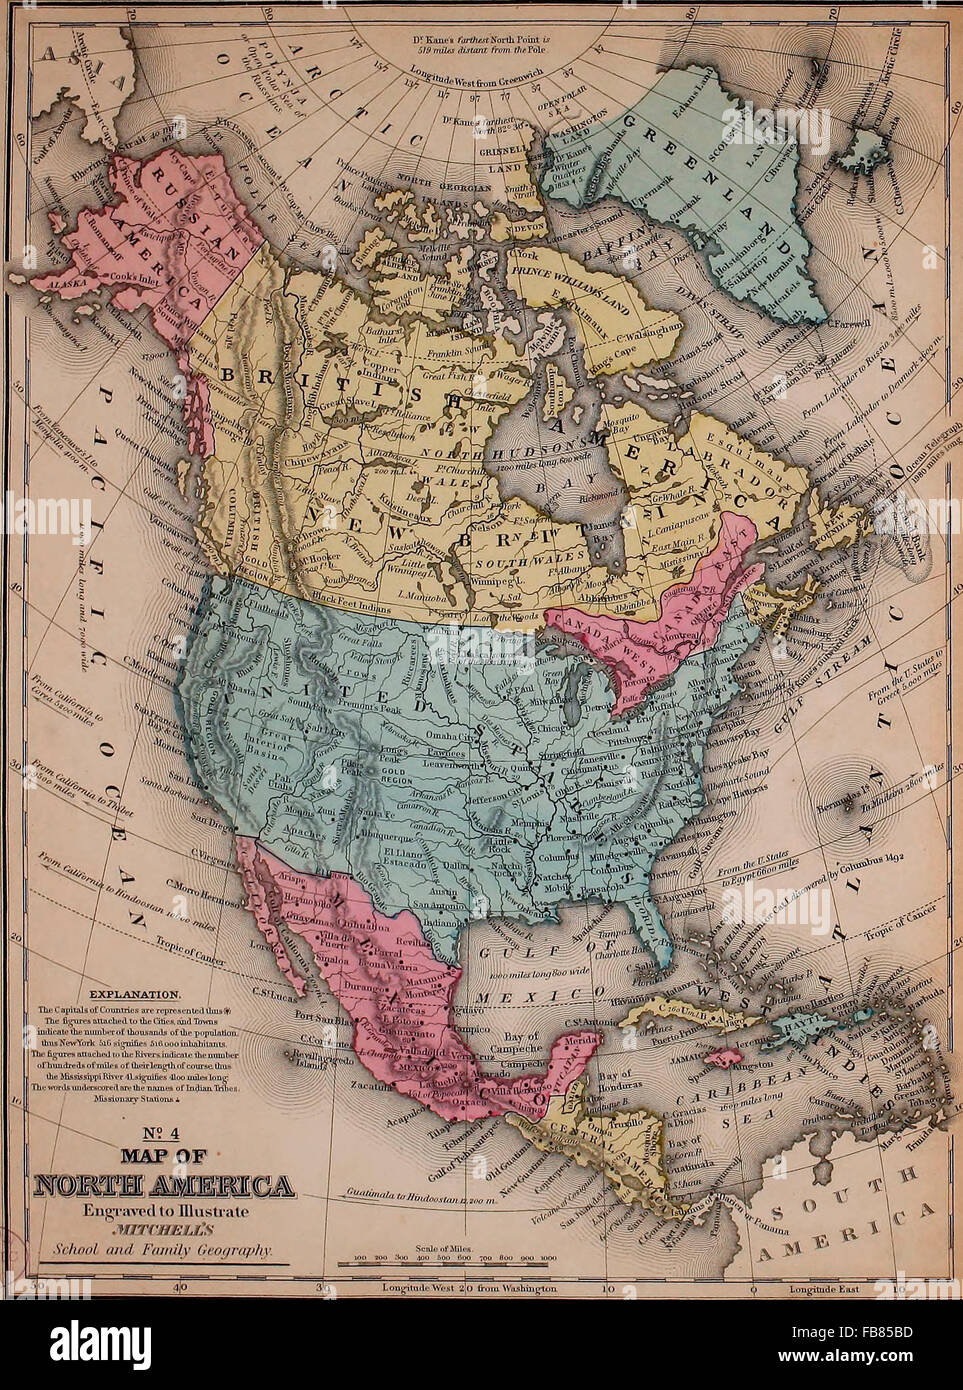 Map of North America, circa 1861. Map shows Alaska as ... Show Map Of Alaska on show map of northern florida, lumberjack show ketchikan alaska, show map washington, show map of denver, show map of appalachian mountains, show map of district of columbia, show map of oahu hawaii, show map of south jersey, show map of omaha, large map alaska, show map of greenland, all water map in alaska, show map of south texas, us map alaska, show map of canada, show map of baltimore, show map of southwest florida, show map of charlotte, show map of miami, show map of calif,